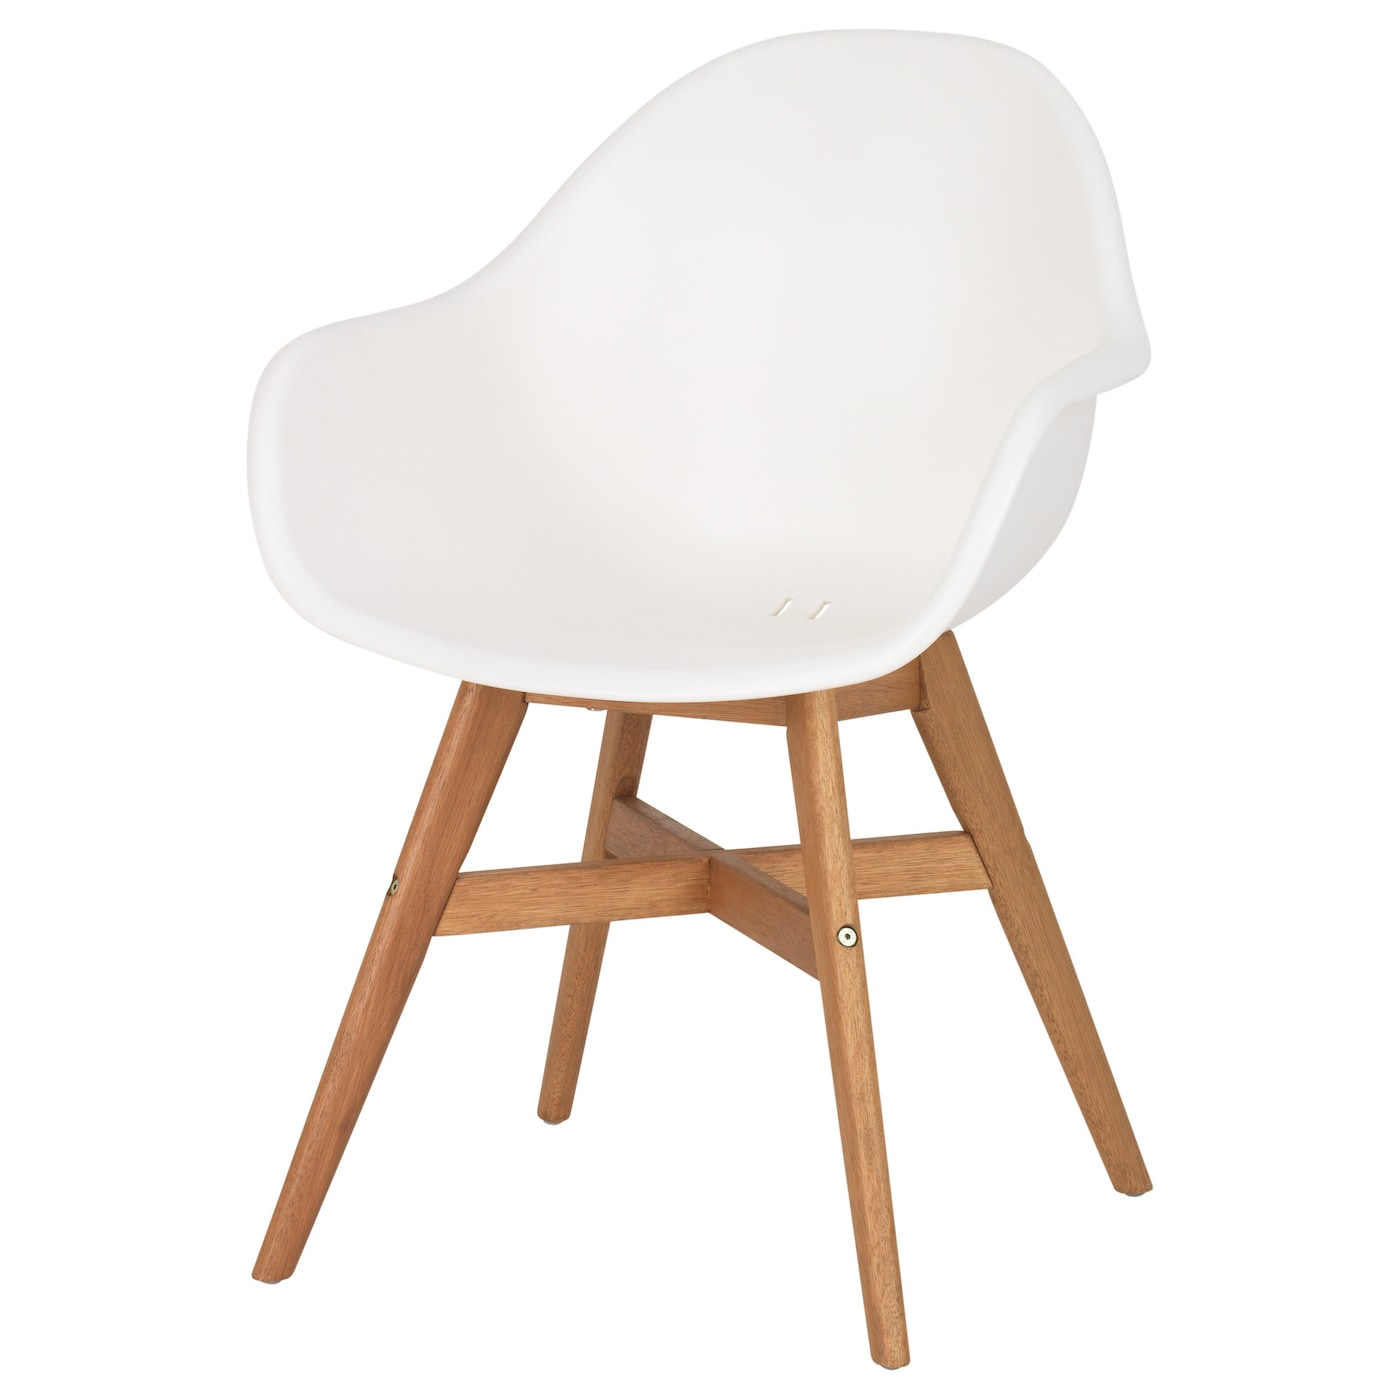 Ikea Kitchen Chairs: Dining Chairs & Kitchen Chairs